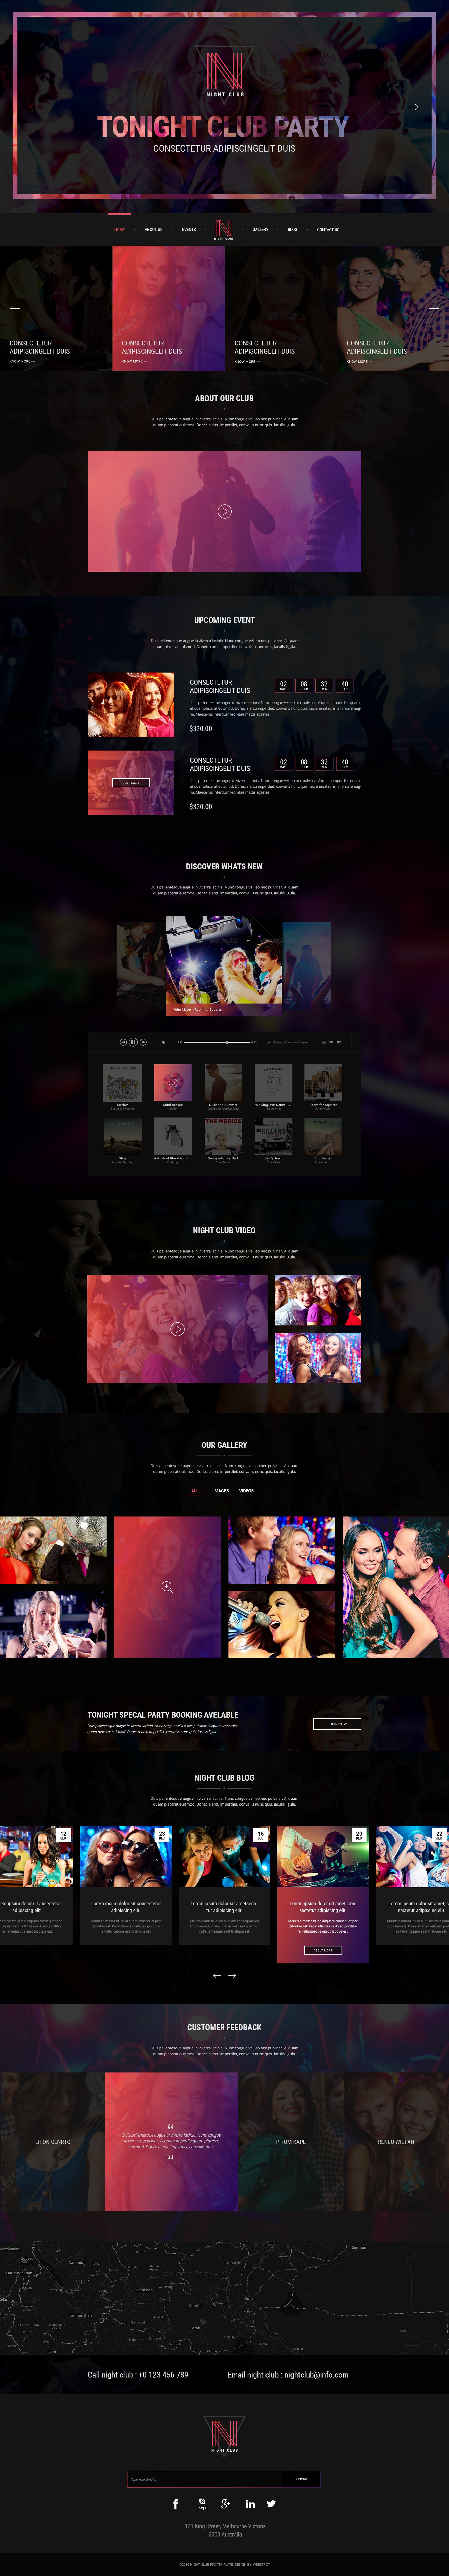 Night Club - Event, DJ, Party, Music Club PSD Template | Dj party ...